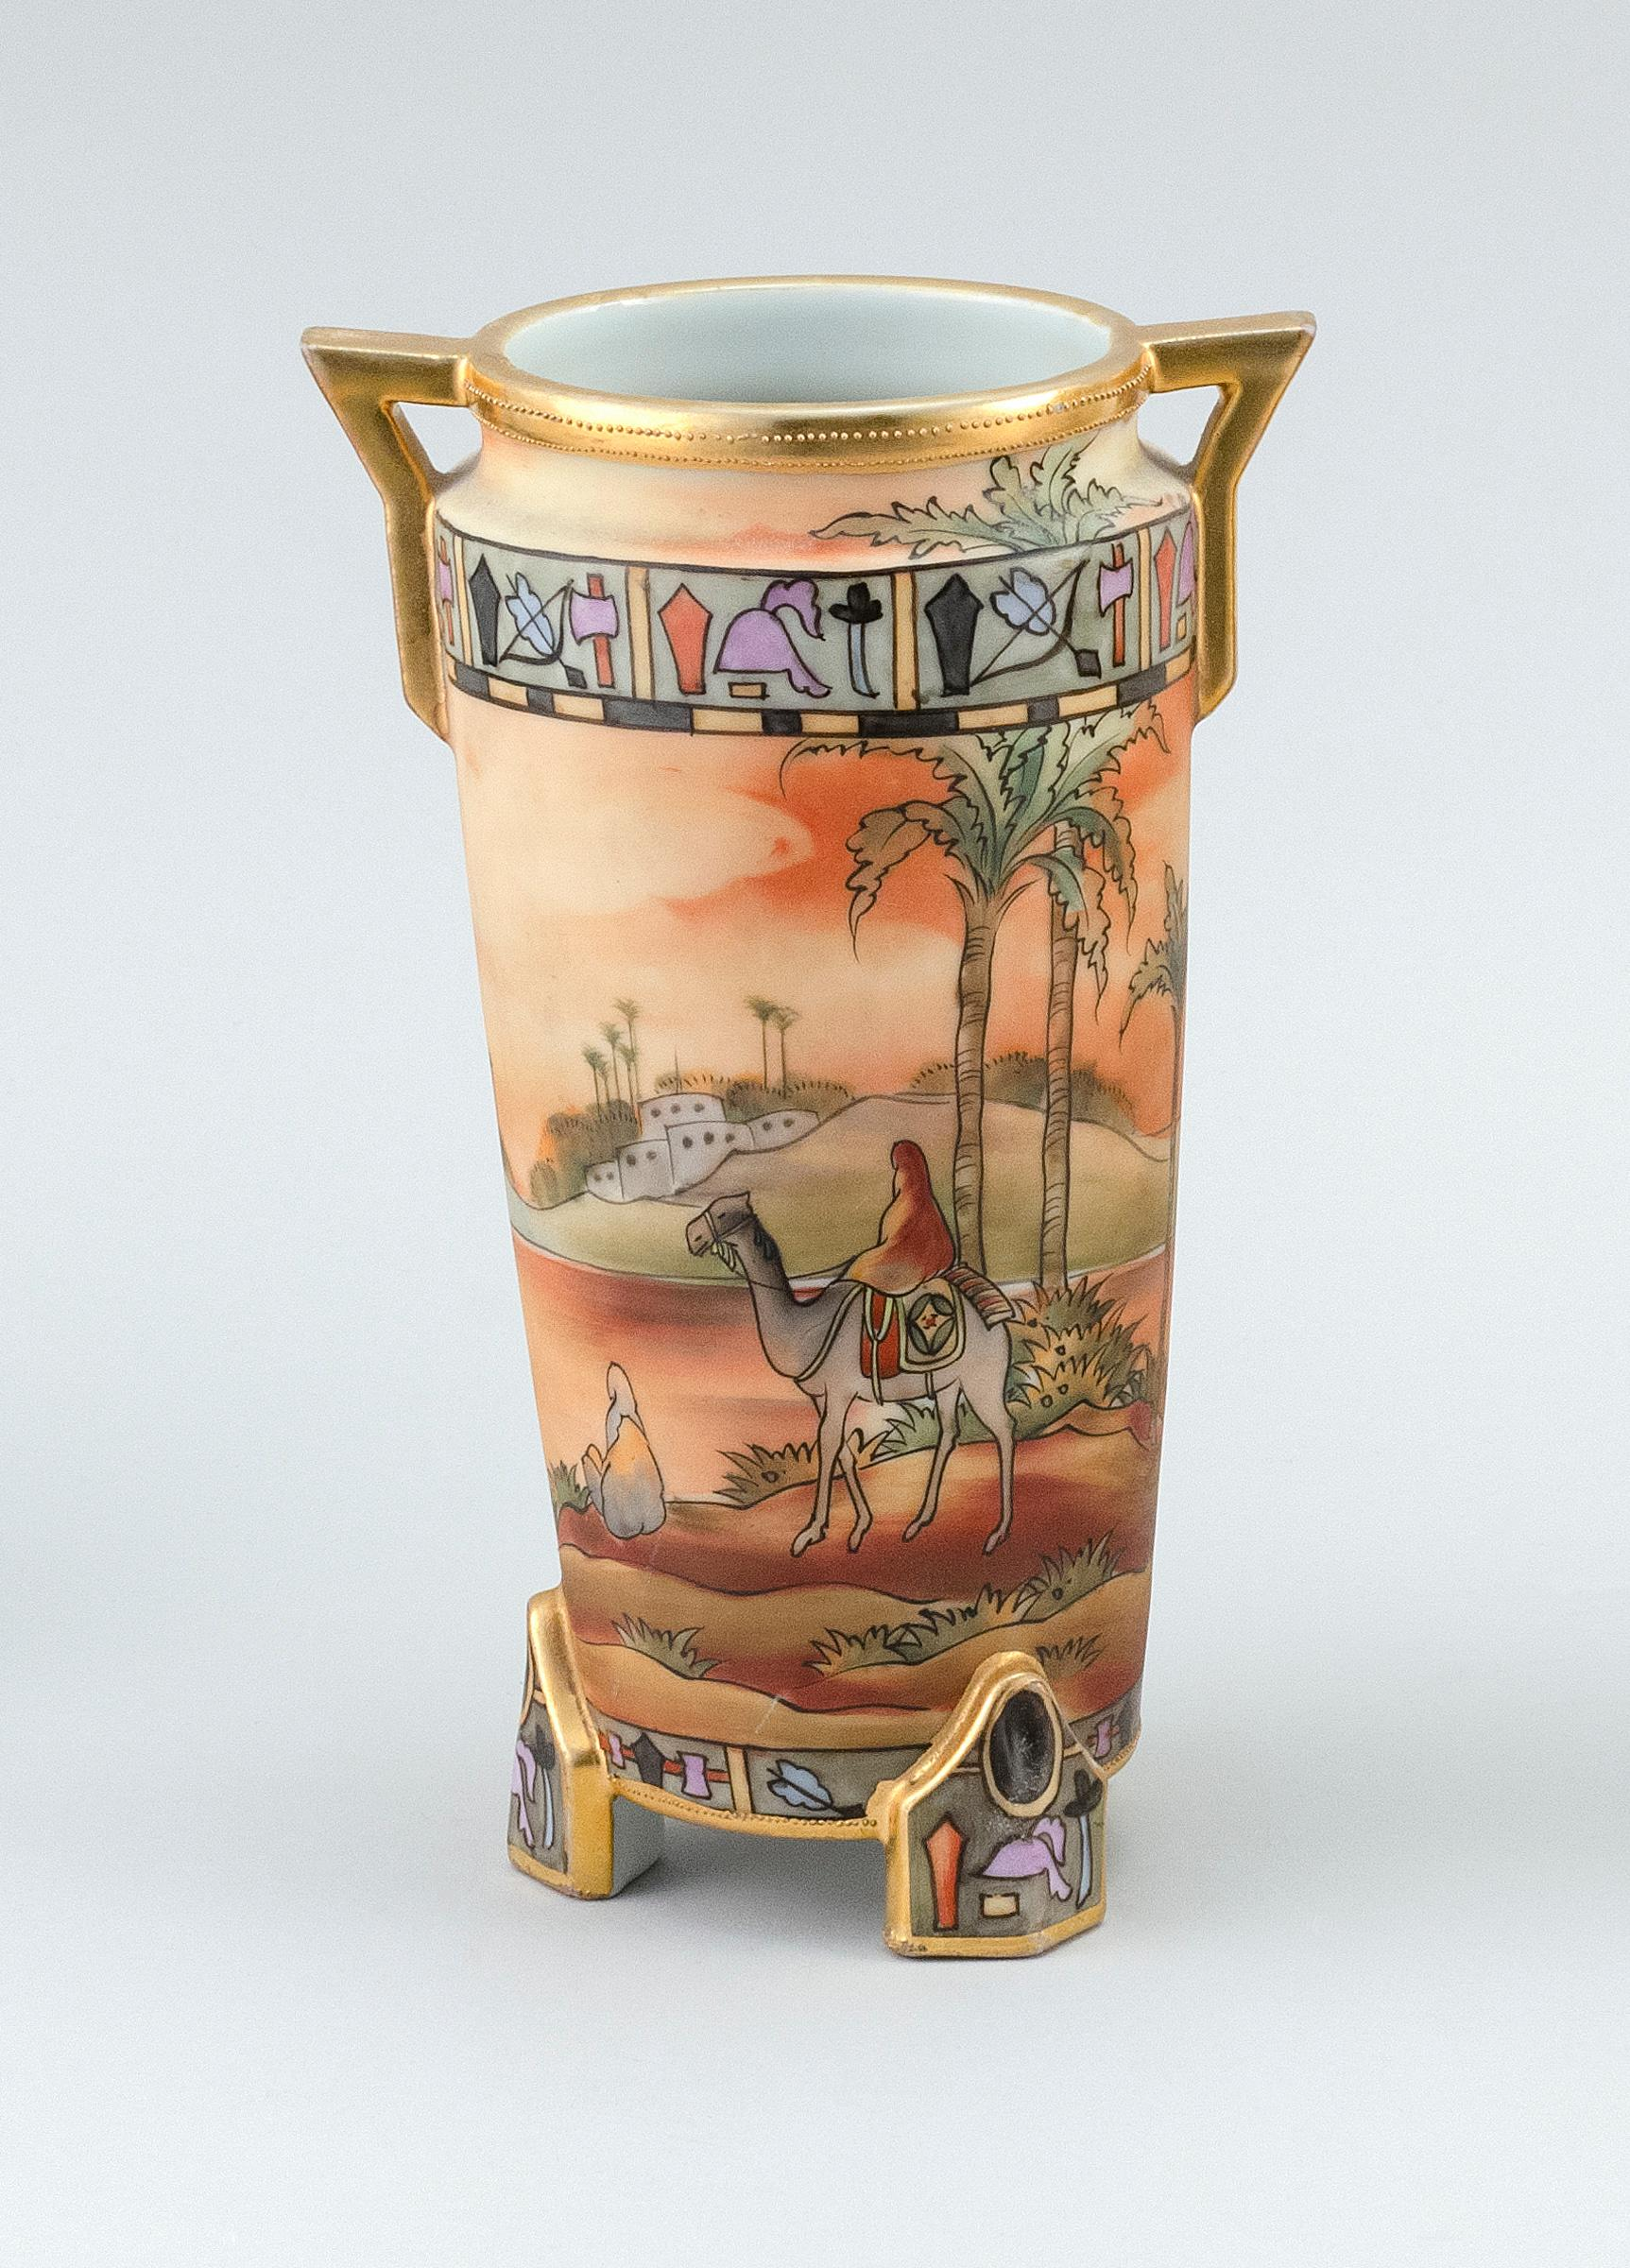 NIPPON PORCELAIN VASE Cylindrical, with openwork handles, tripod base and decoration of an Egyptian landscape with camel rider. Van...